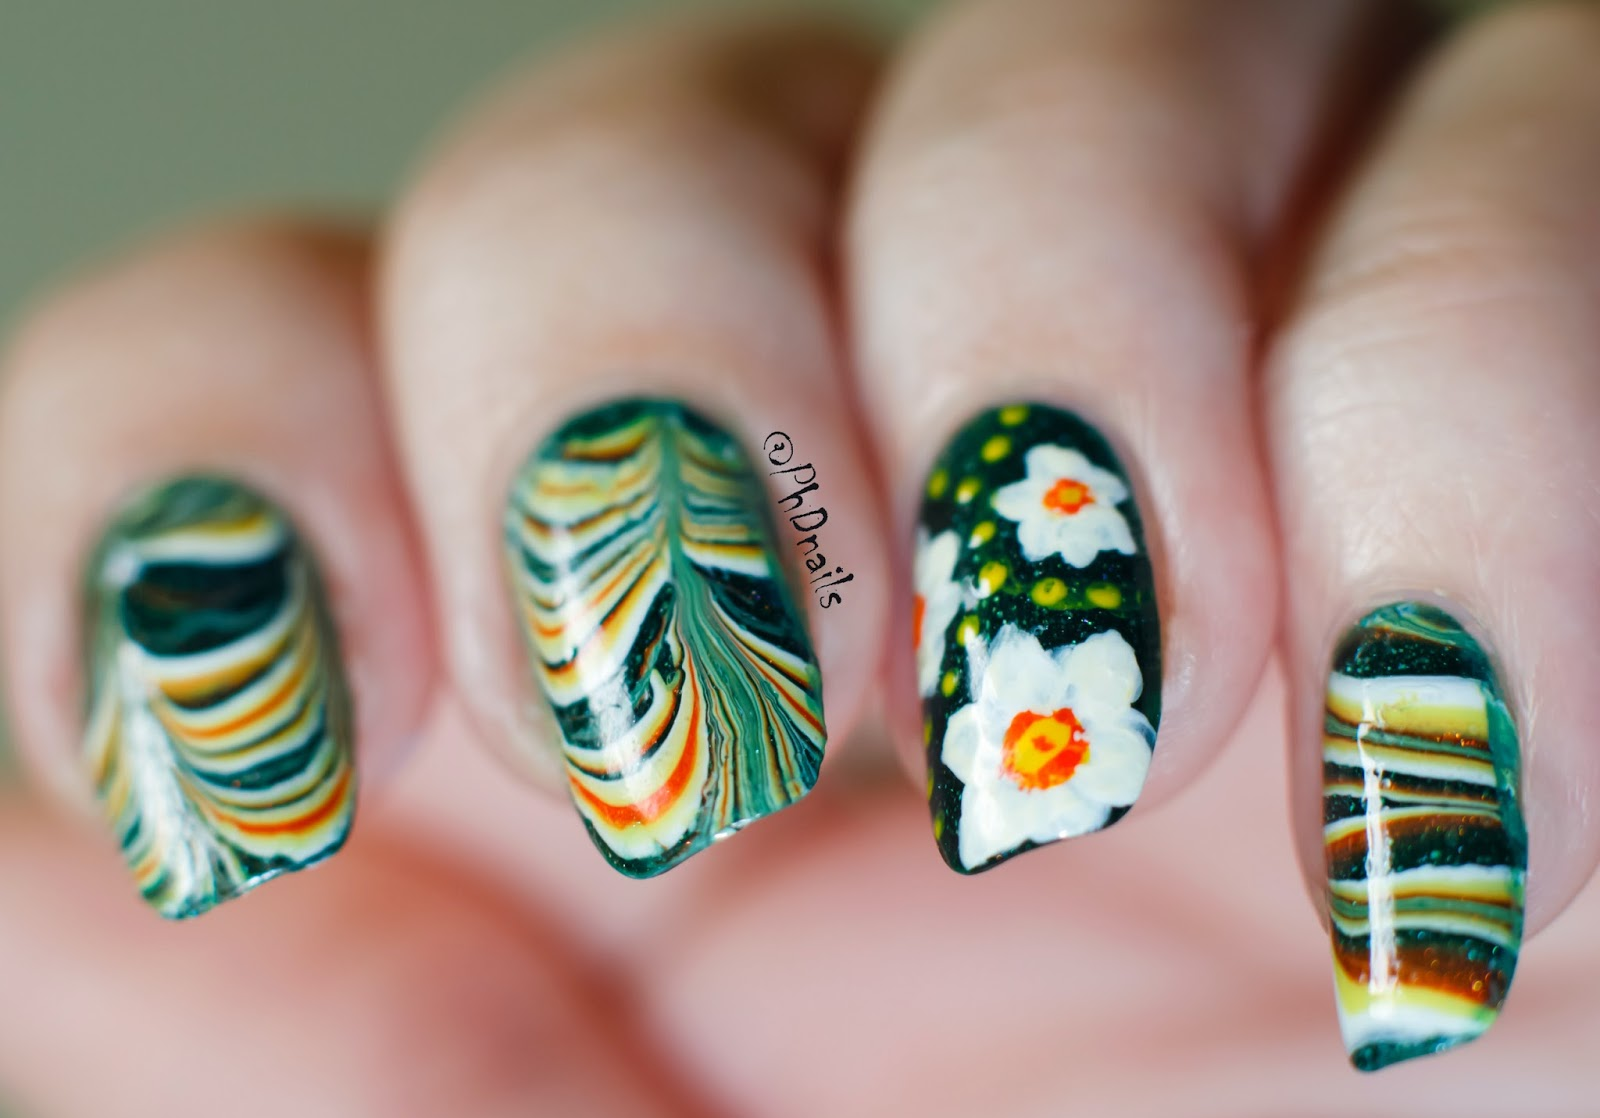 Phd Nails 30 Days Of Colour Water Marble Decals And Free